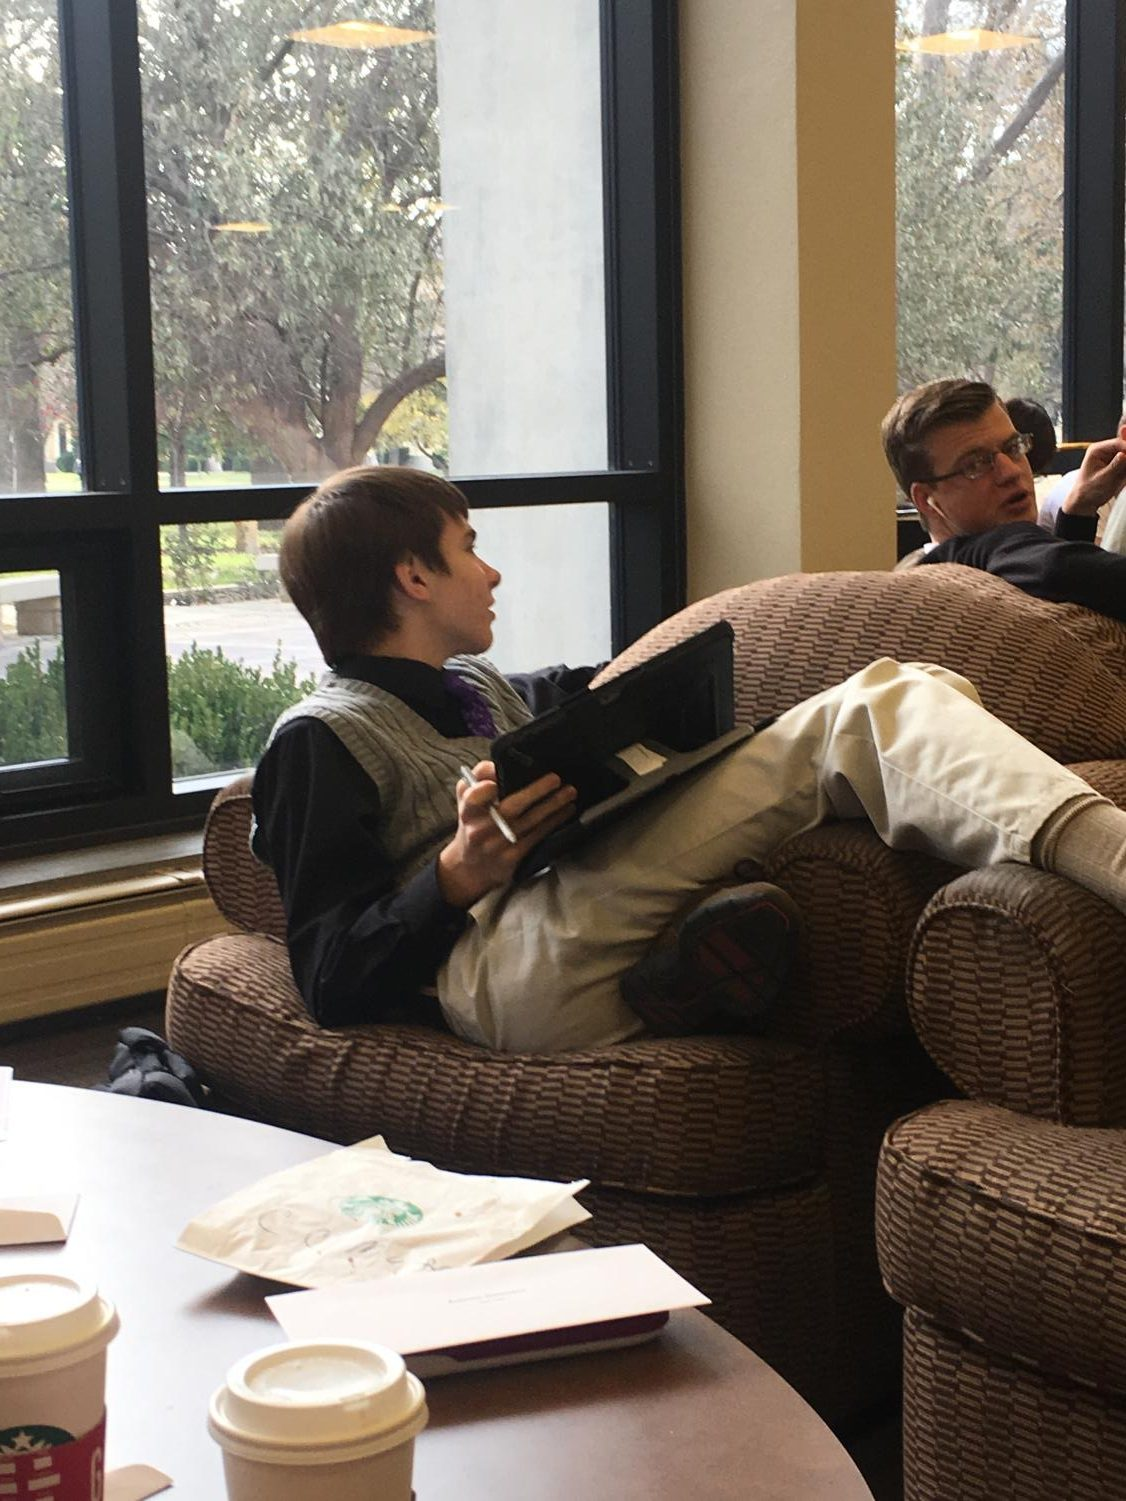 Senior Dawson Rooney discusses one of the practice problems with senior Zach Wagoner on Nov. 9. Rooney and Wagoner took 4th in algebraic manipulations with senior Lisa Schoenberger.